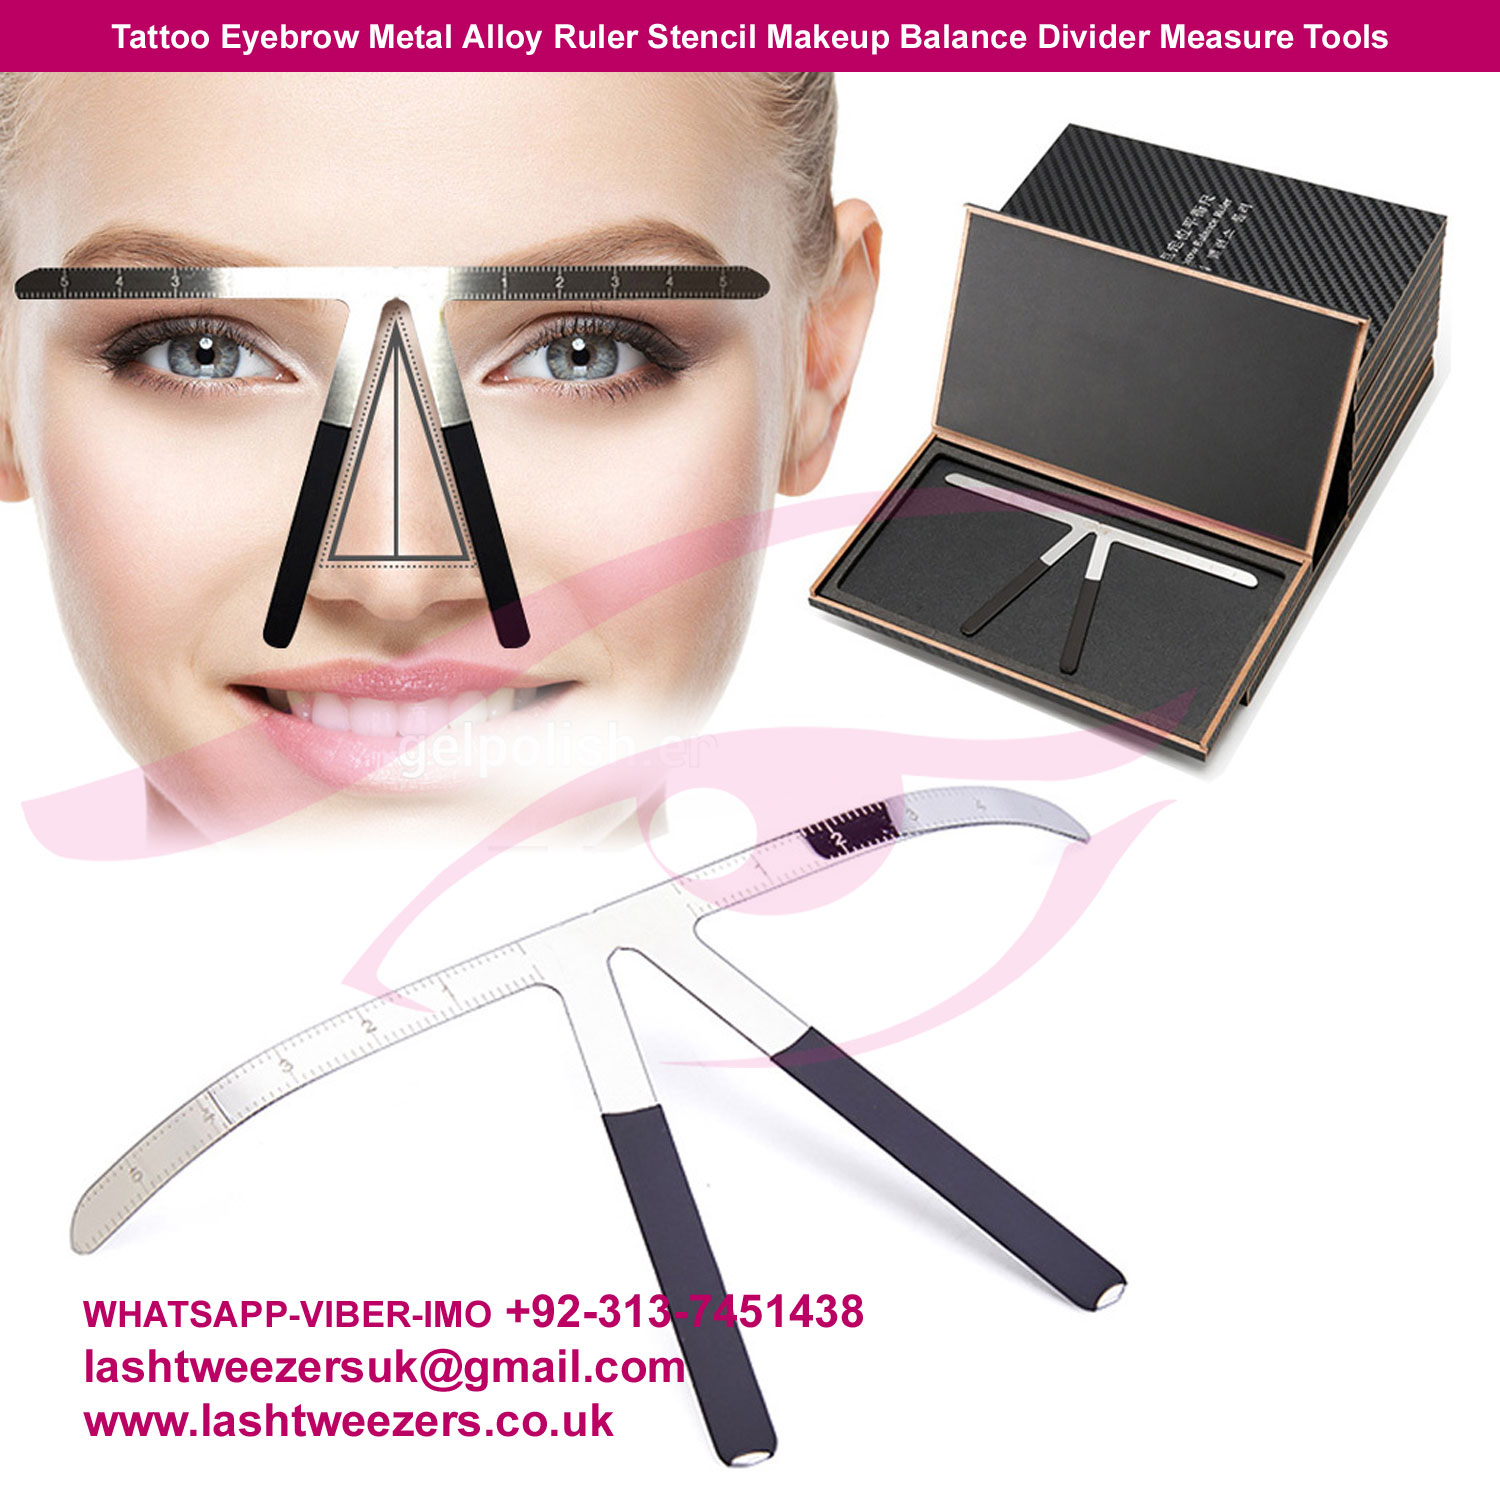 Tattoo Eyebrow Metal Alloy Ruler Stencil Makeup Balance Divider Measure Tools